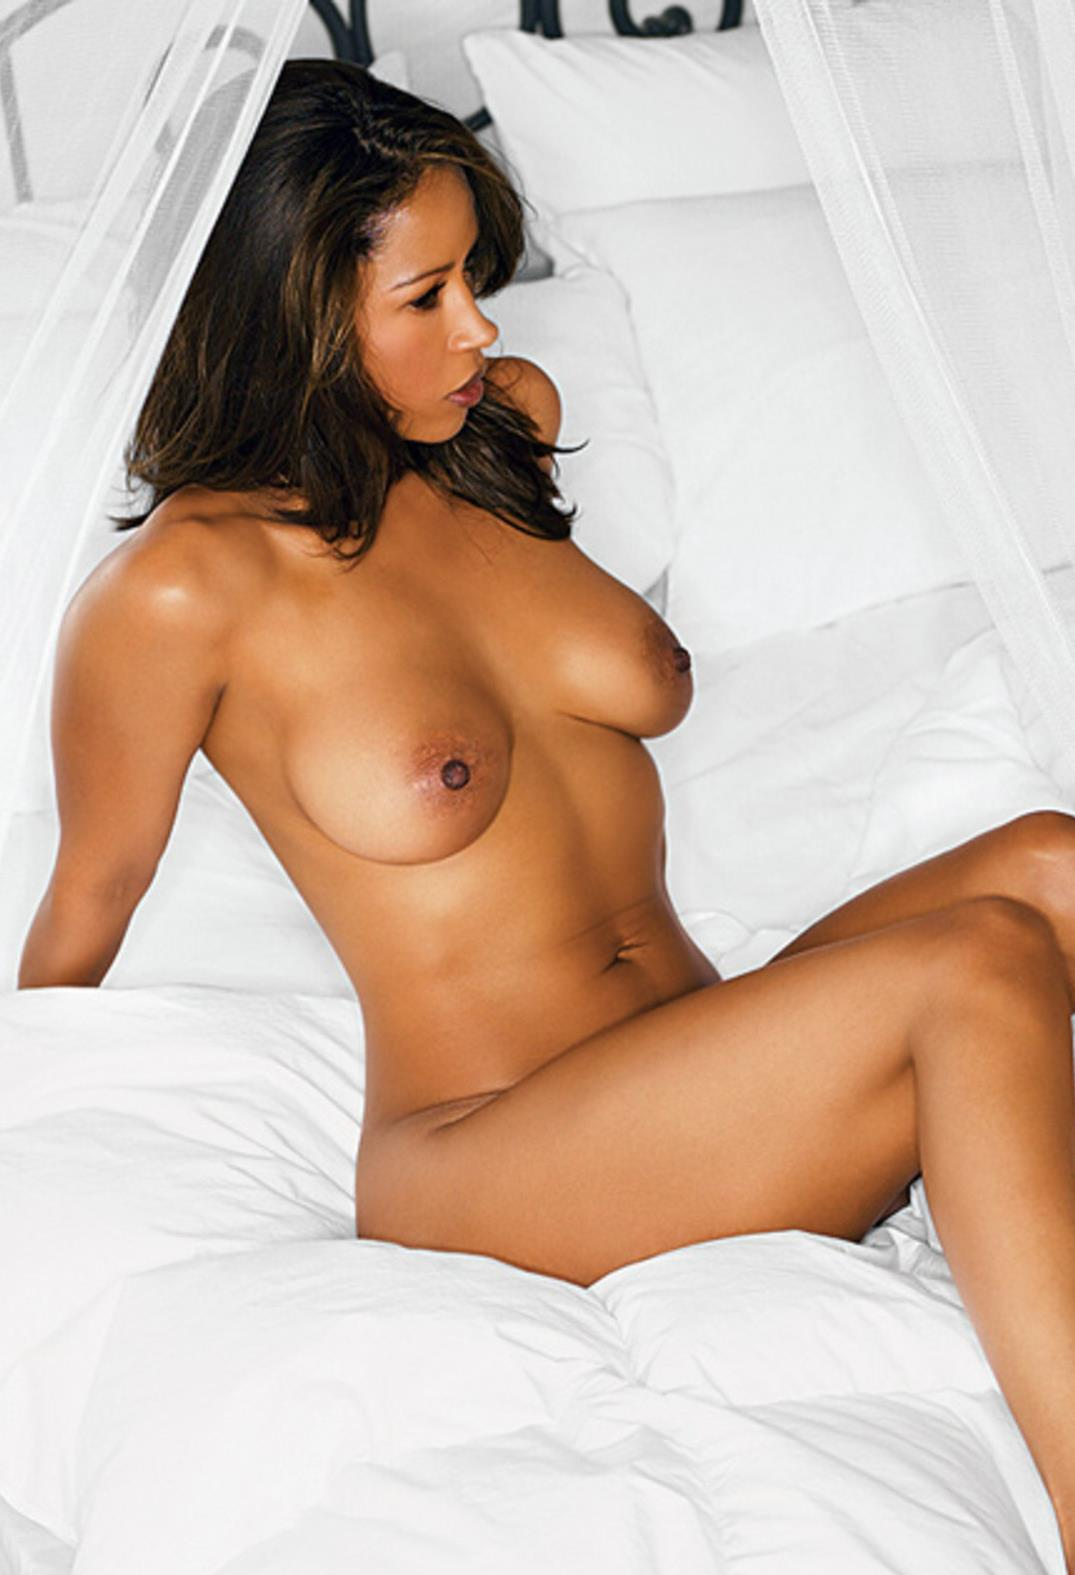 Nude pics of stacey dash